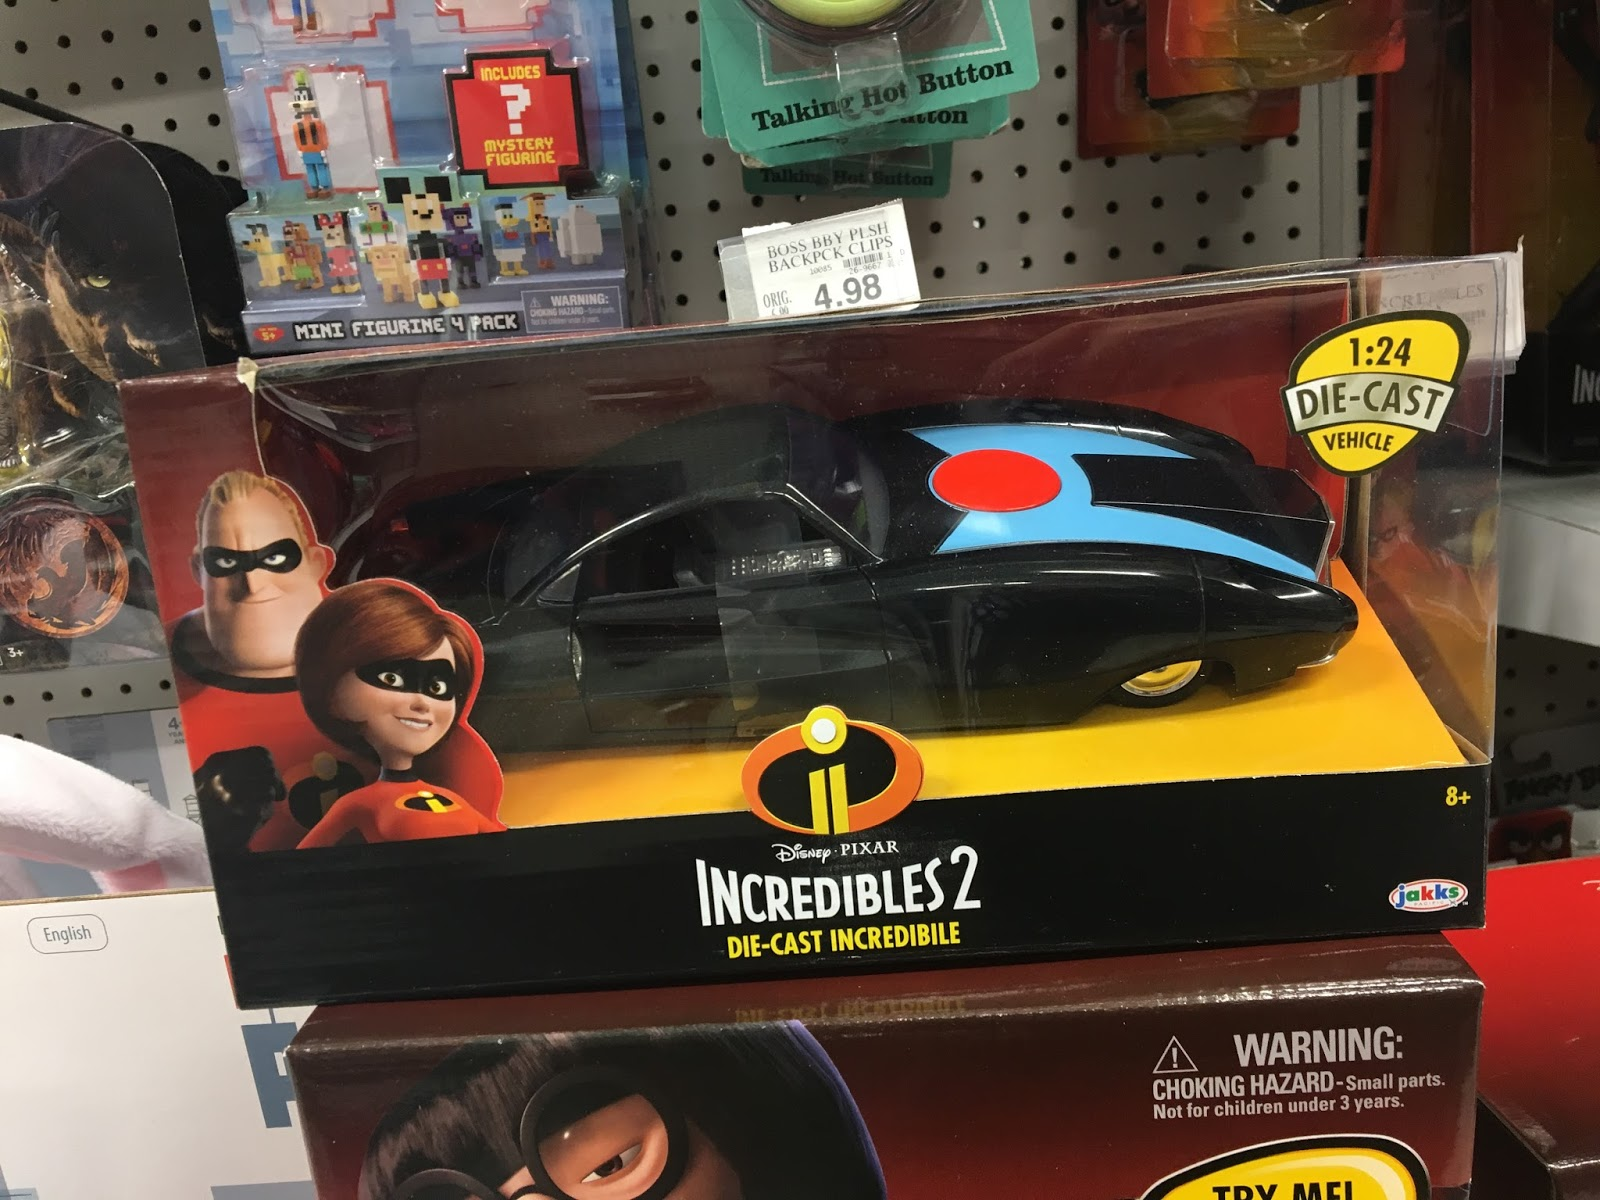 incredibles 2 1:24 scale diecast